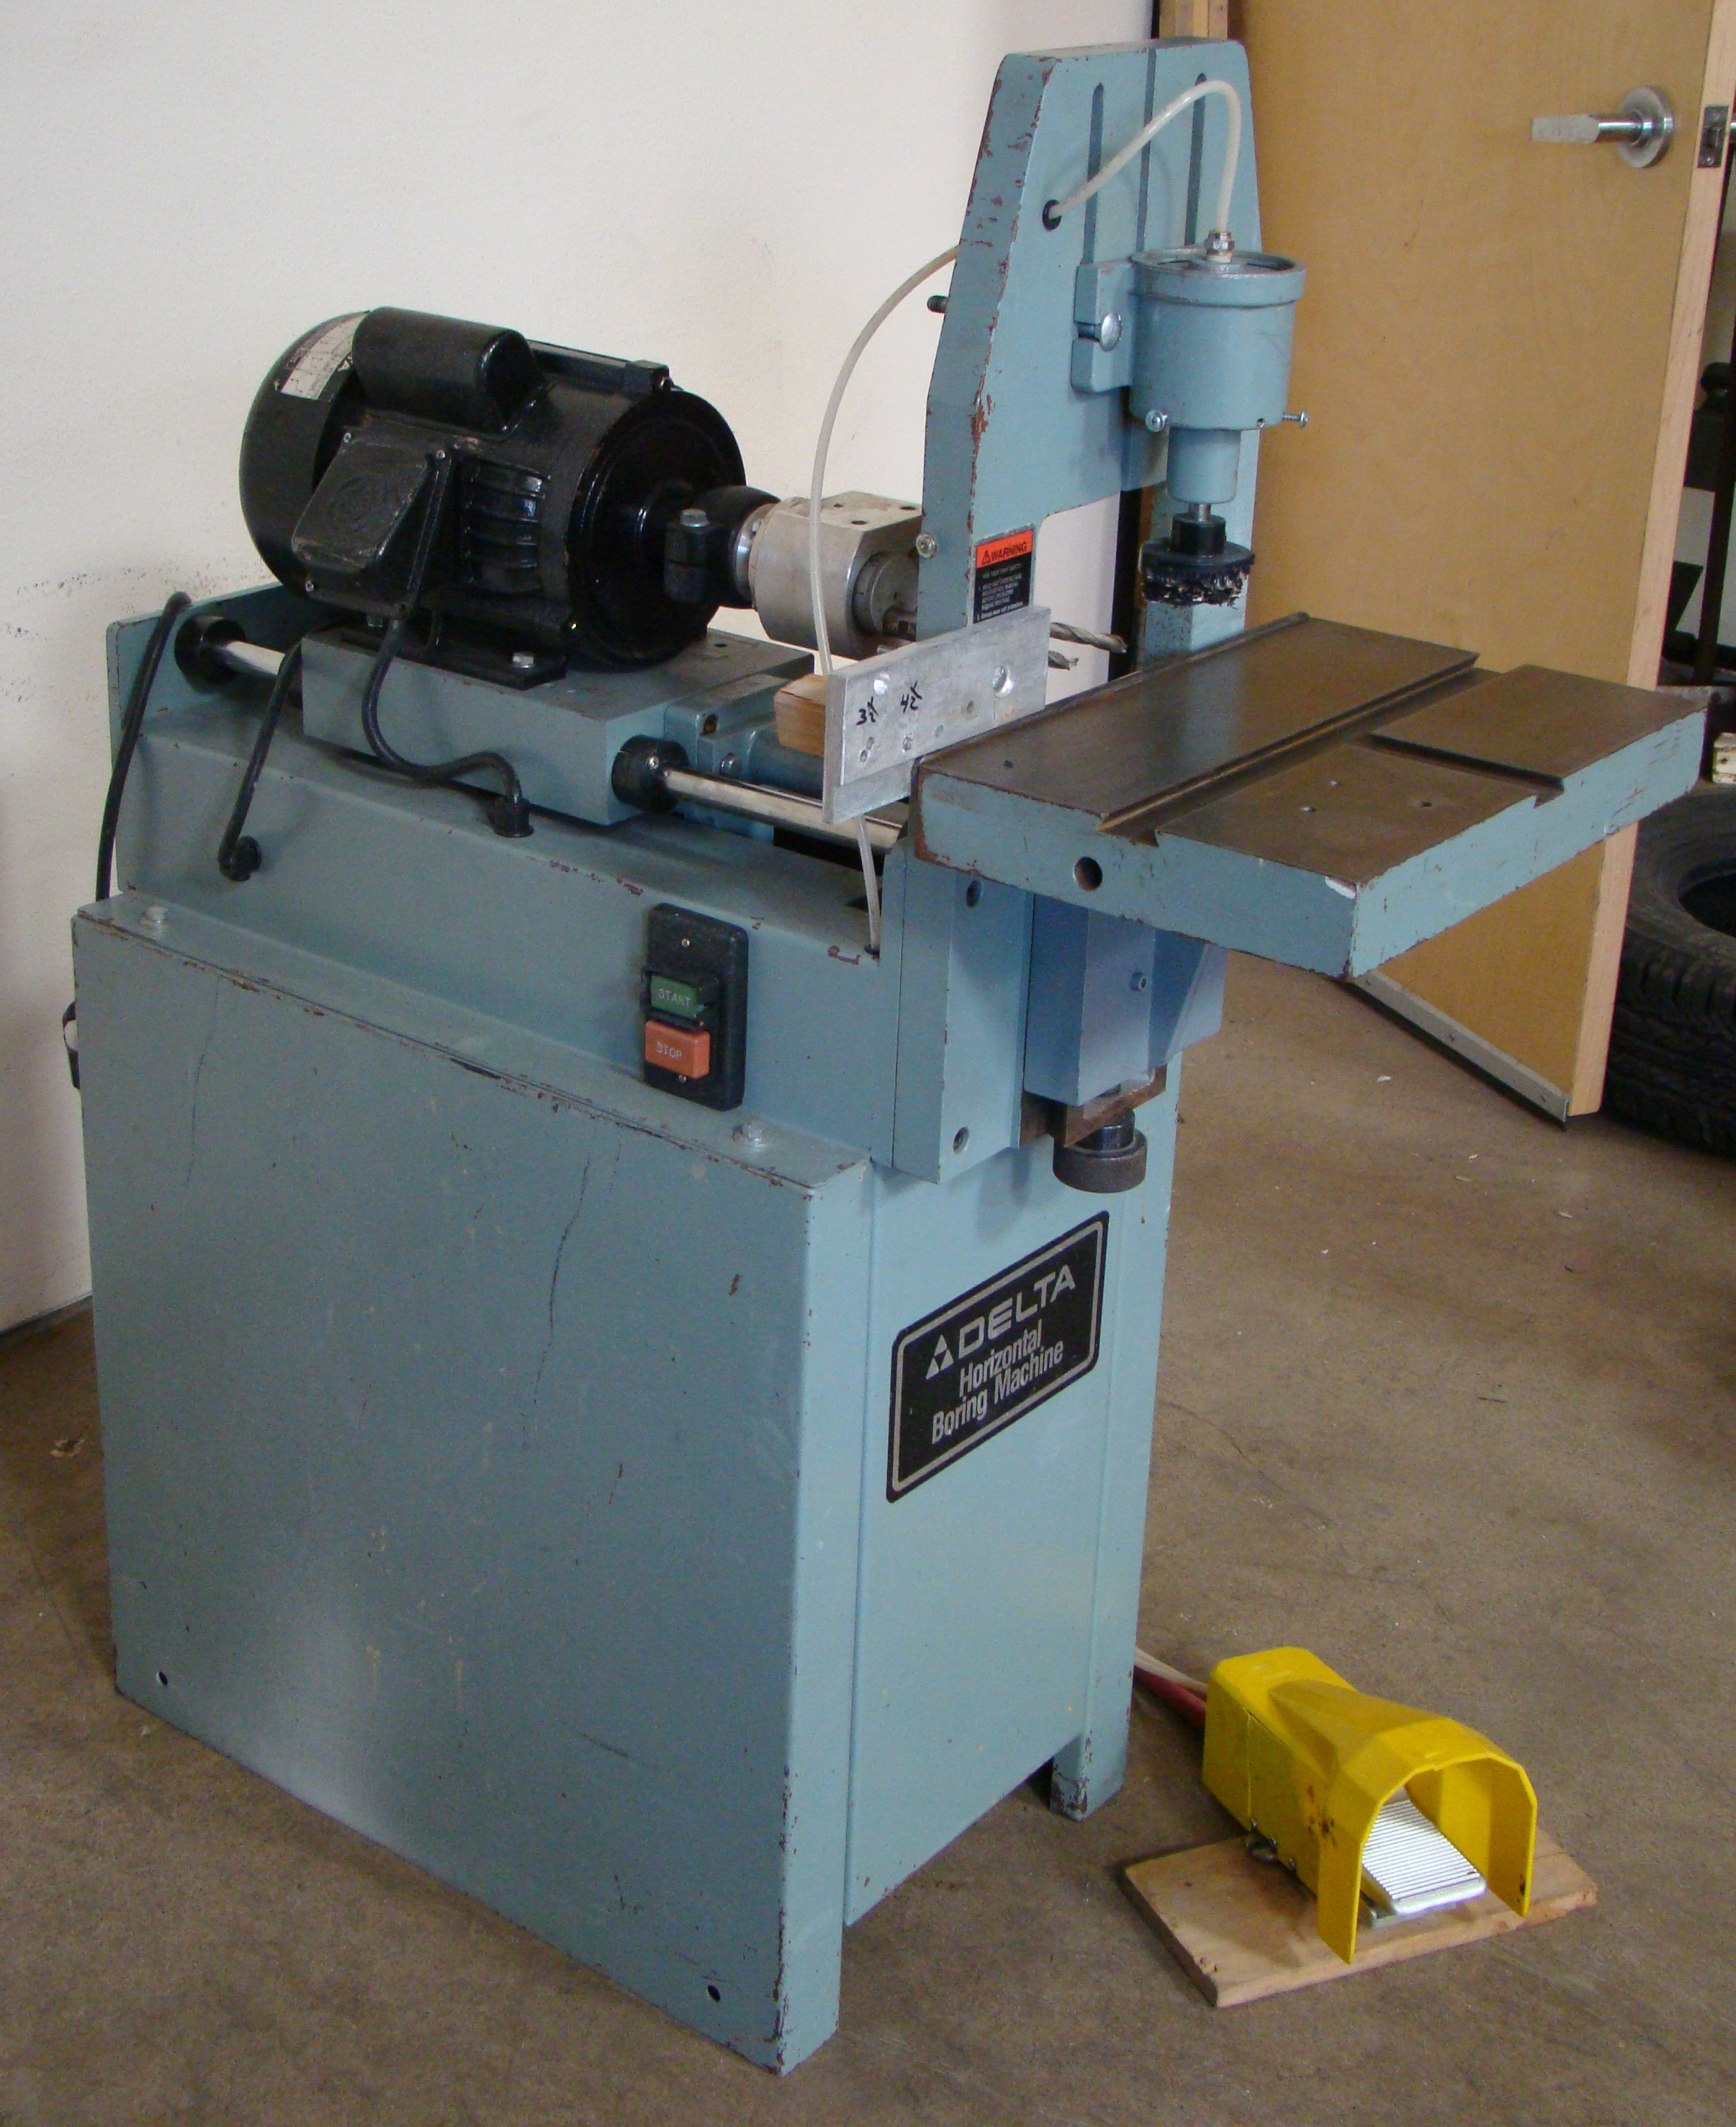 Delta Horizontal 2 Spindle Boring Machine Model #32-350, 1 HP 115/230 Volt - Image 2 of 6